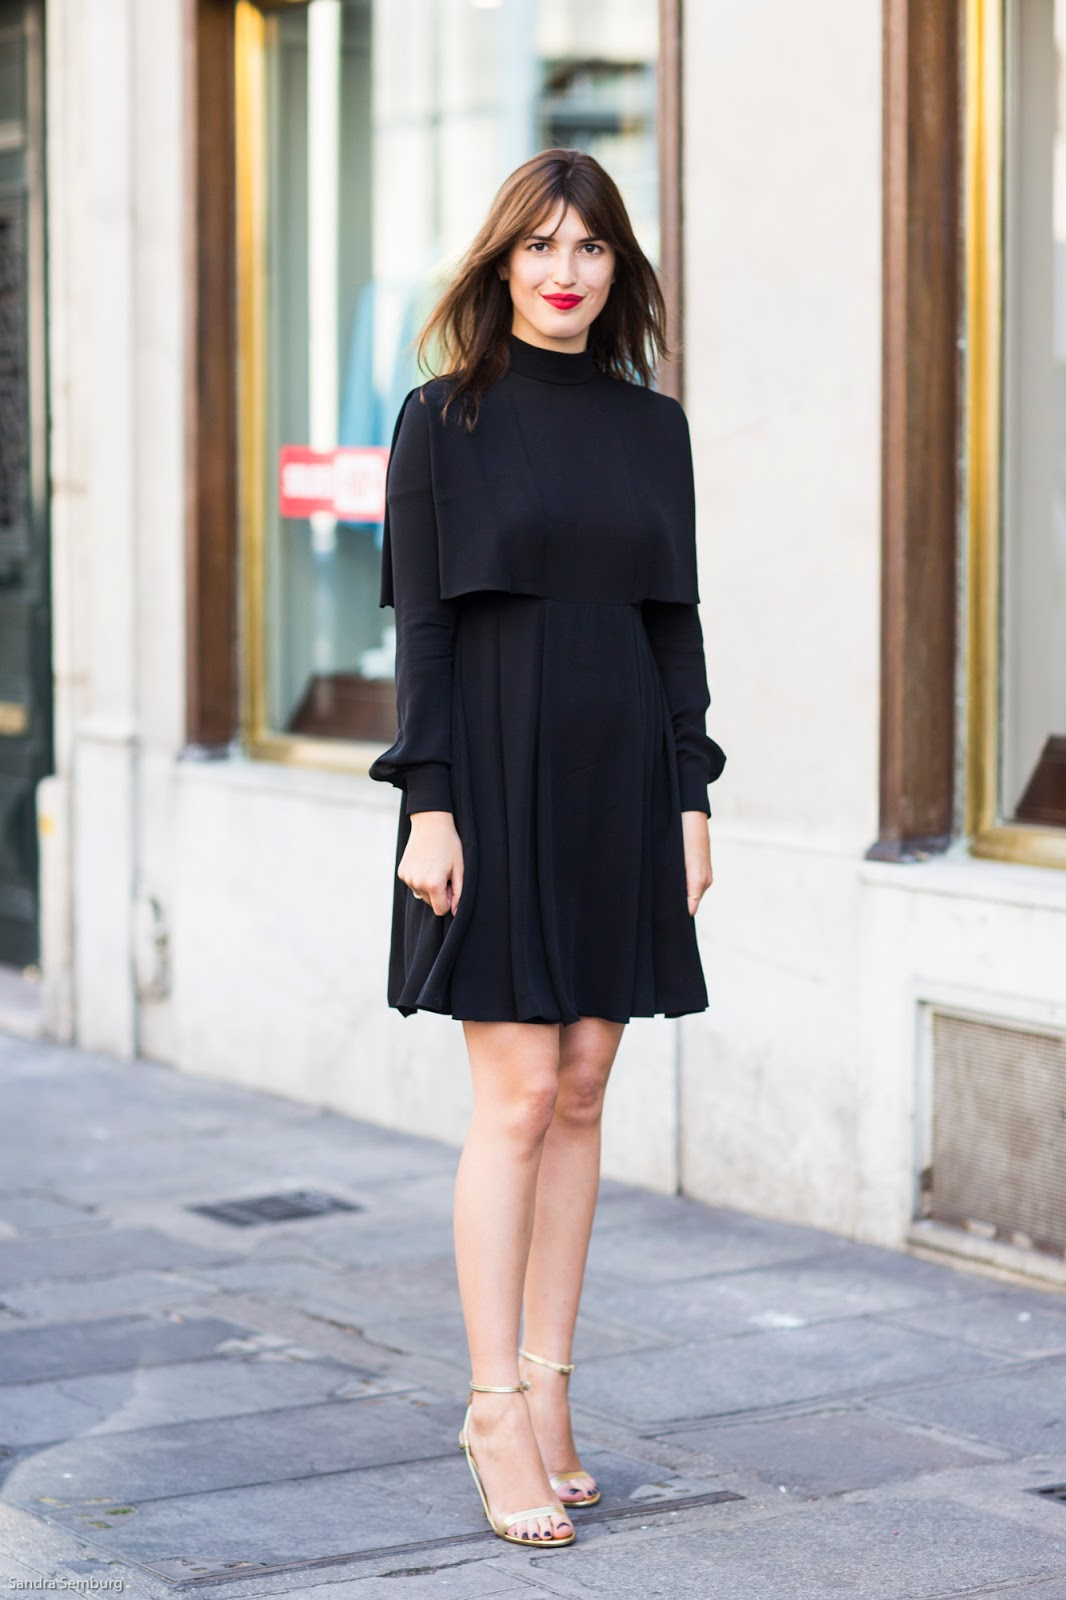 Black dress in summer - Jeanne Damas With A Black Dress And Golden Sandals